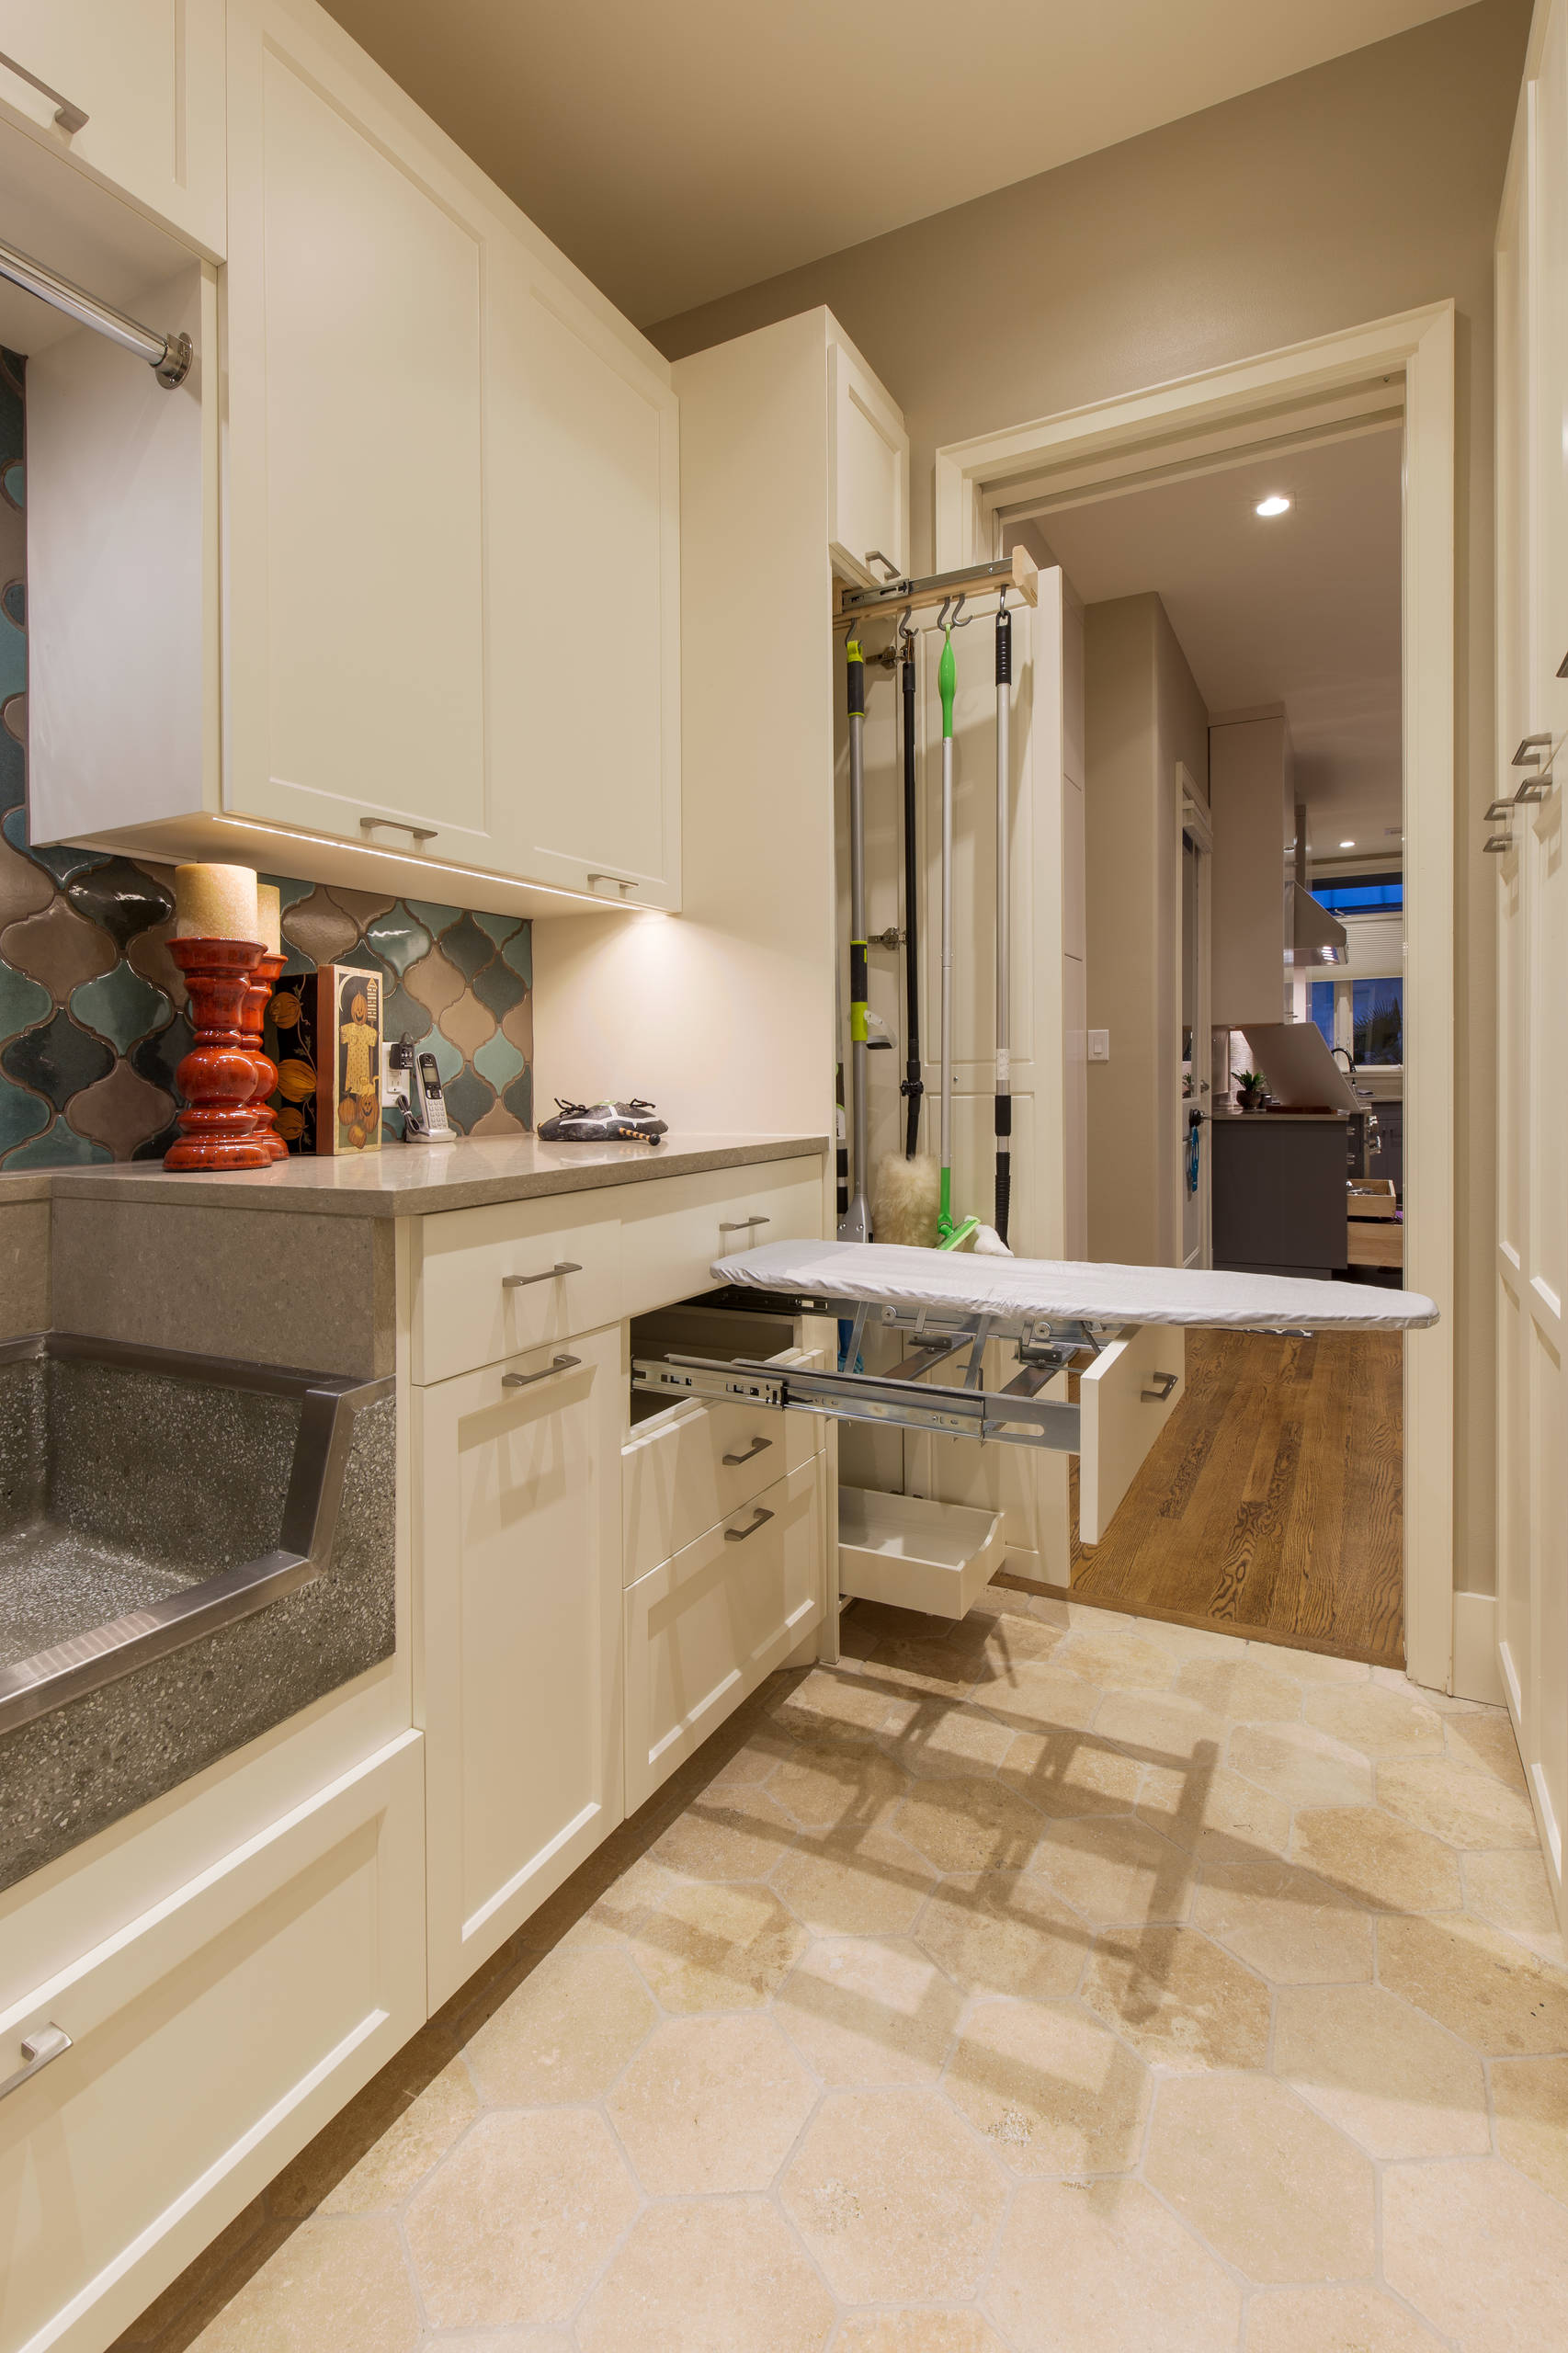 75 Beautiful Modern Laundry Room Pictures Ideas January 2021 Houzz